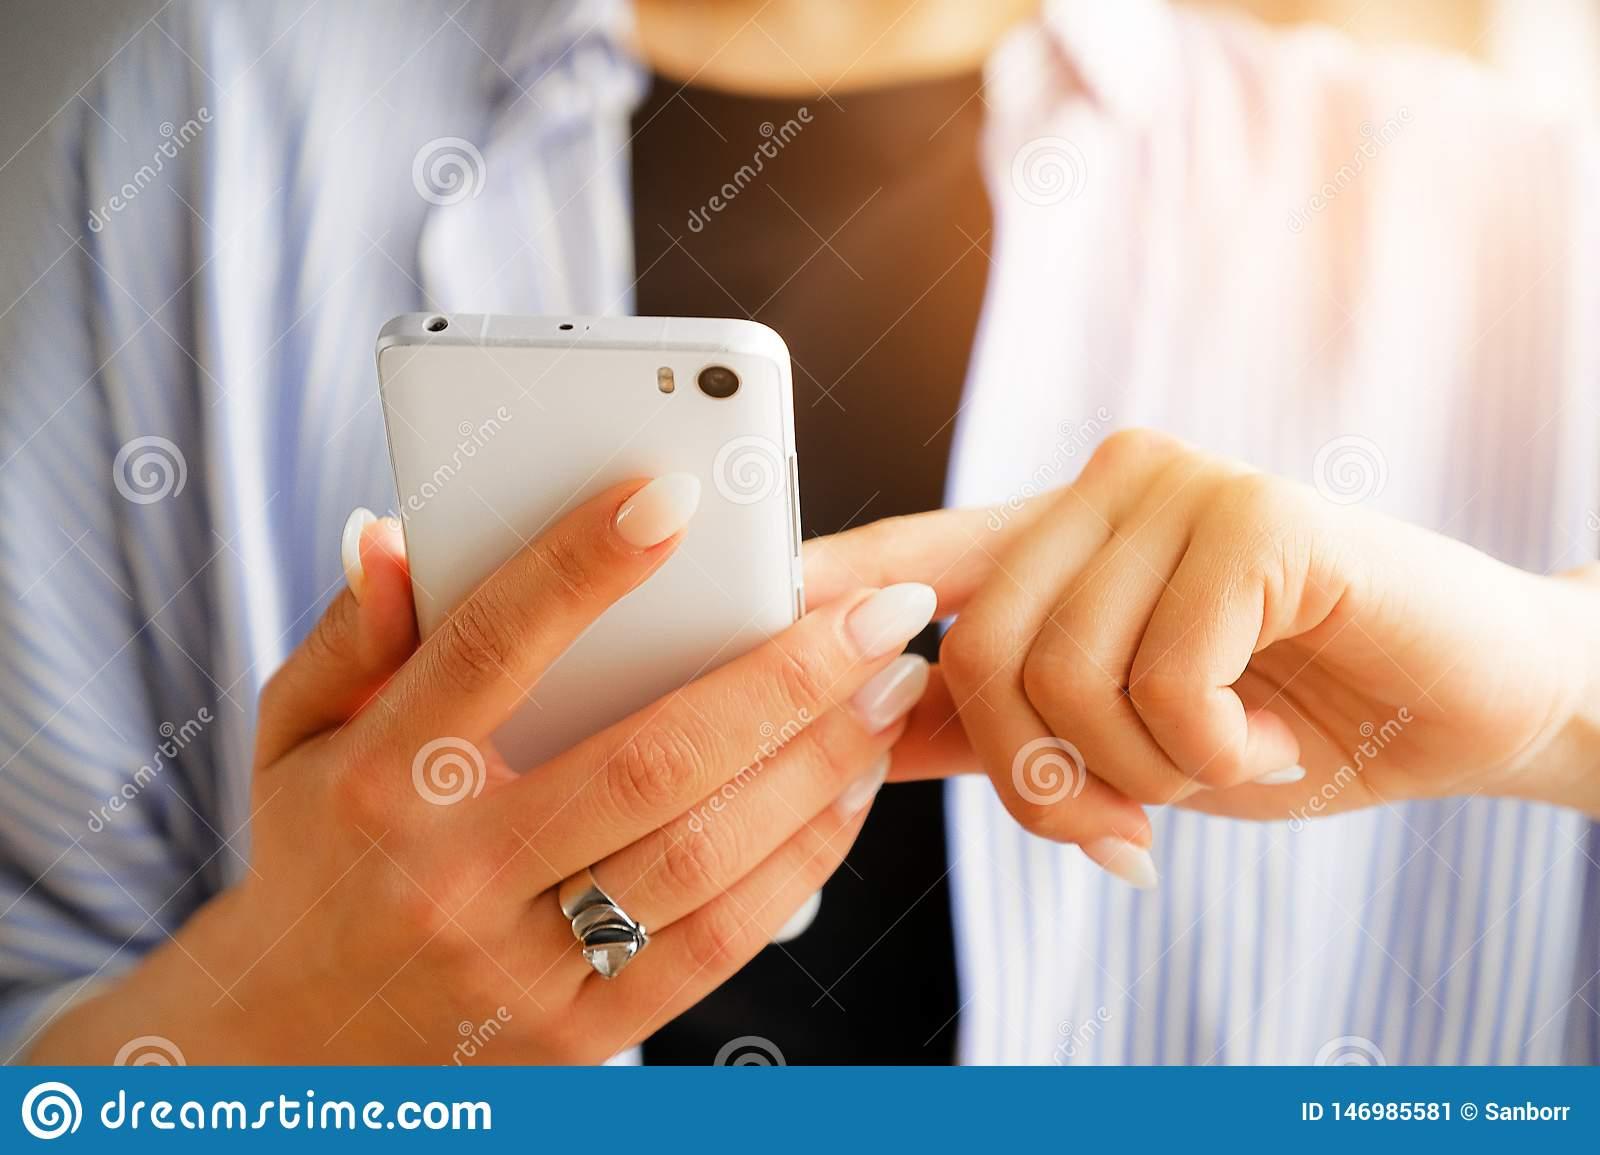 Mobile phone in the hands of a stylish fashion girl freelancer. A young woman in a black t-shirt and striped shirt, with a